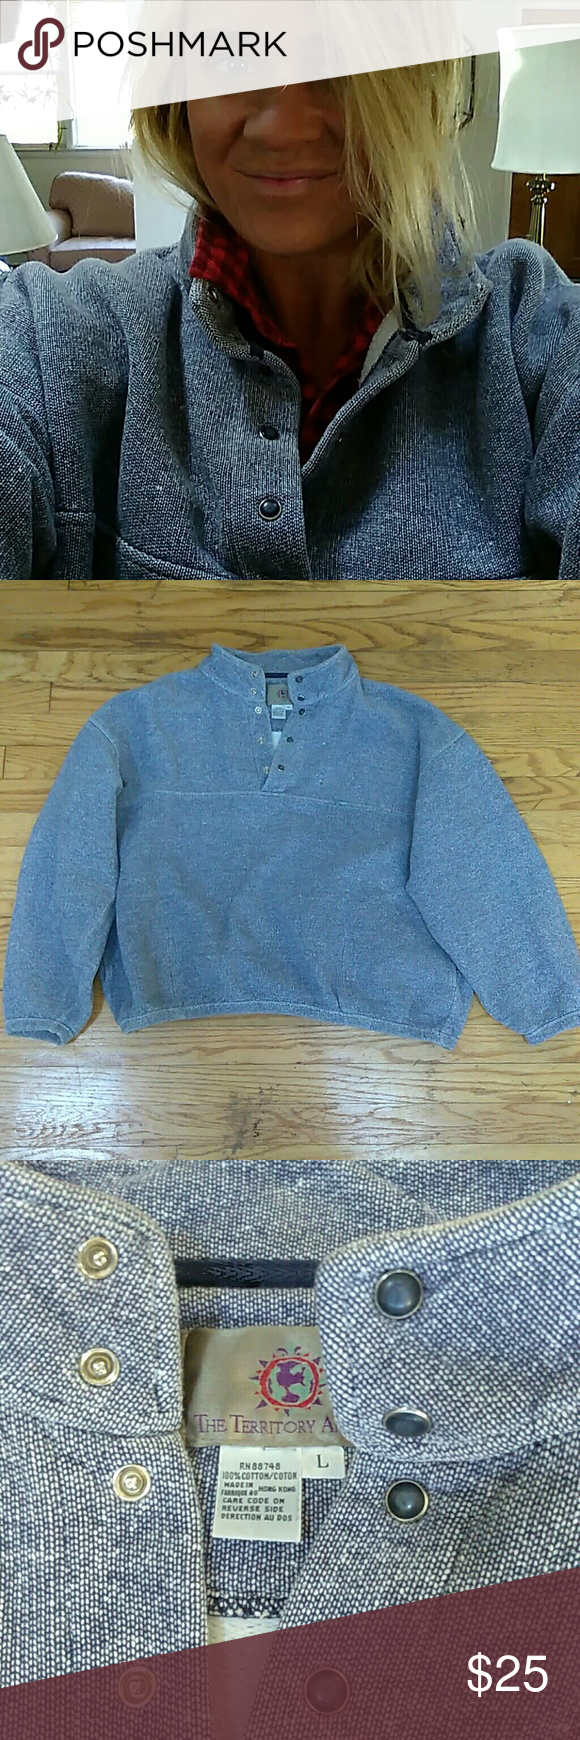 The Territory Ahead Vintage Pullover Awesome WARM 100% cotton ...